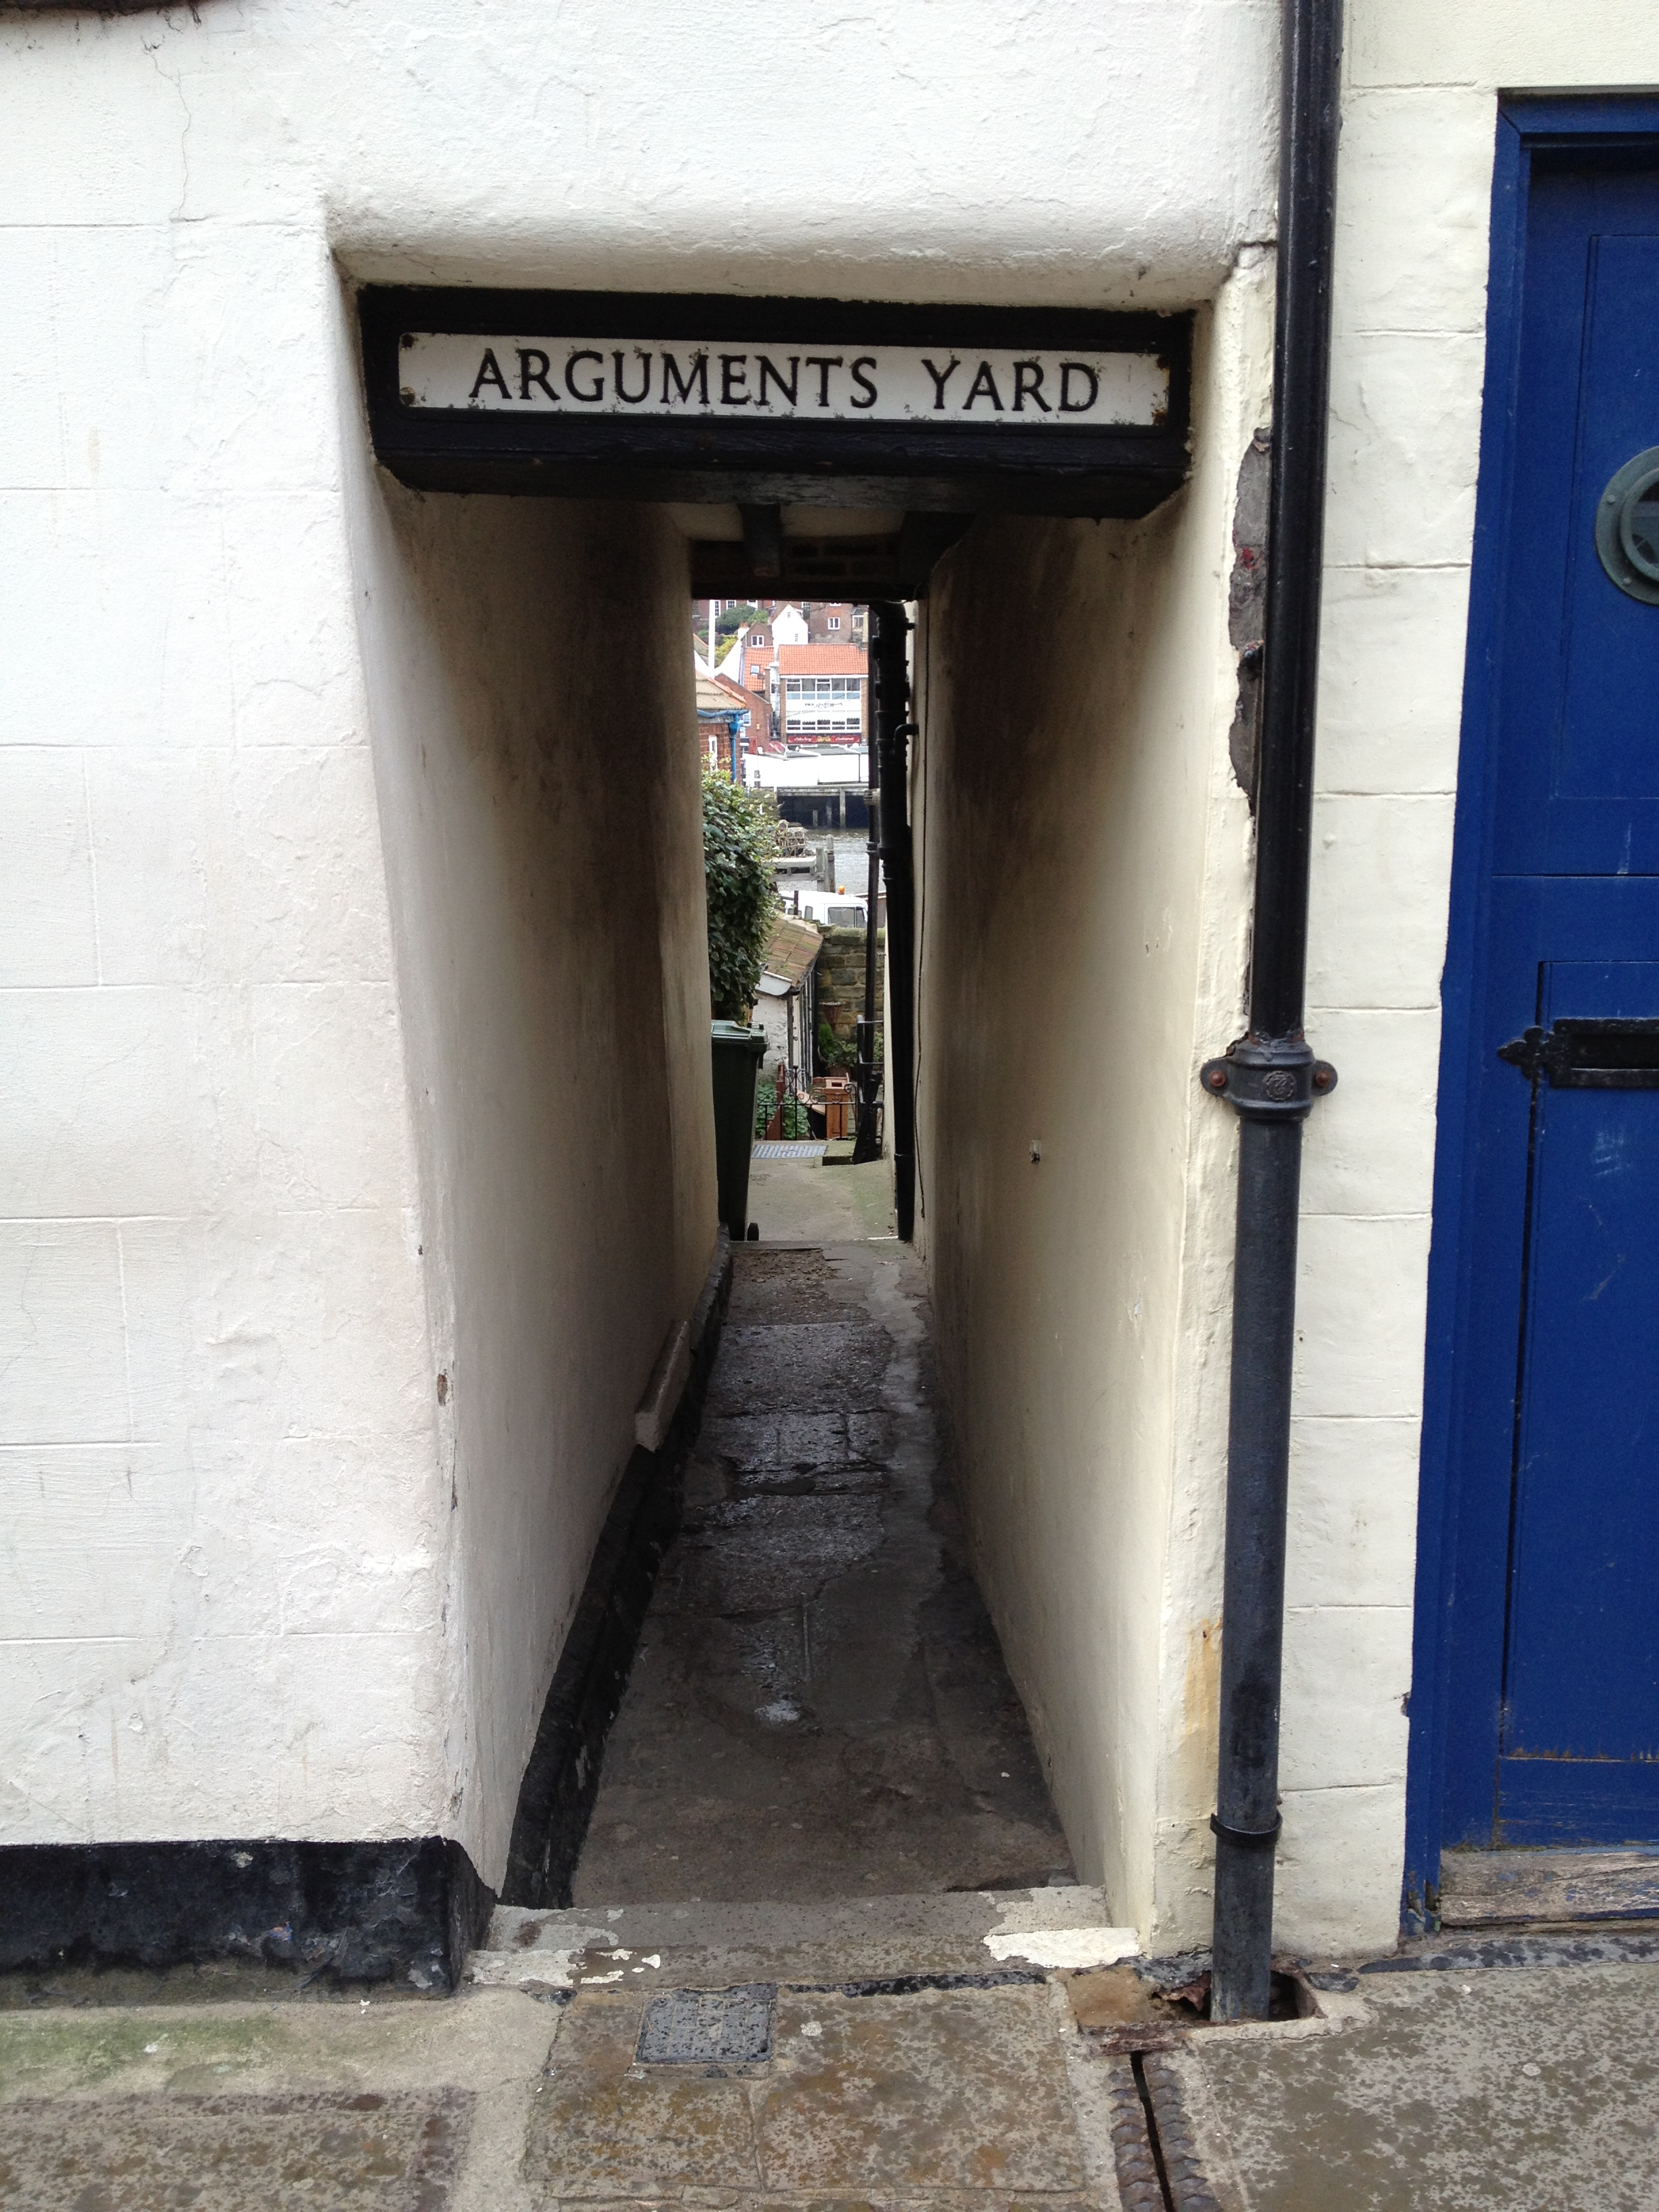 Arguments Yard, Whitby